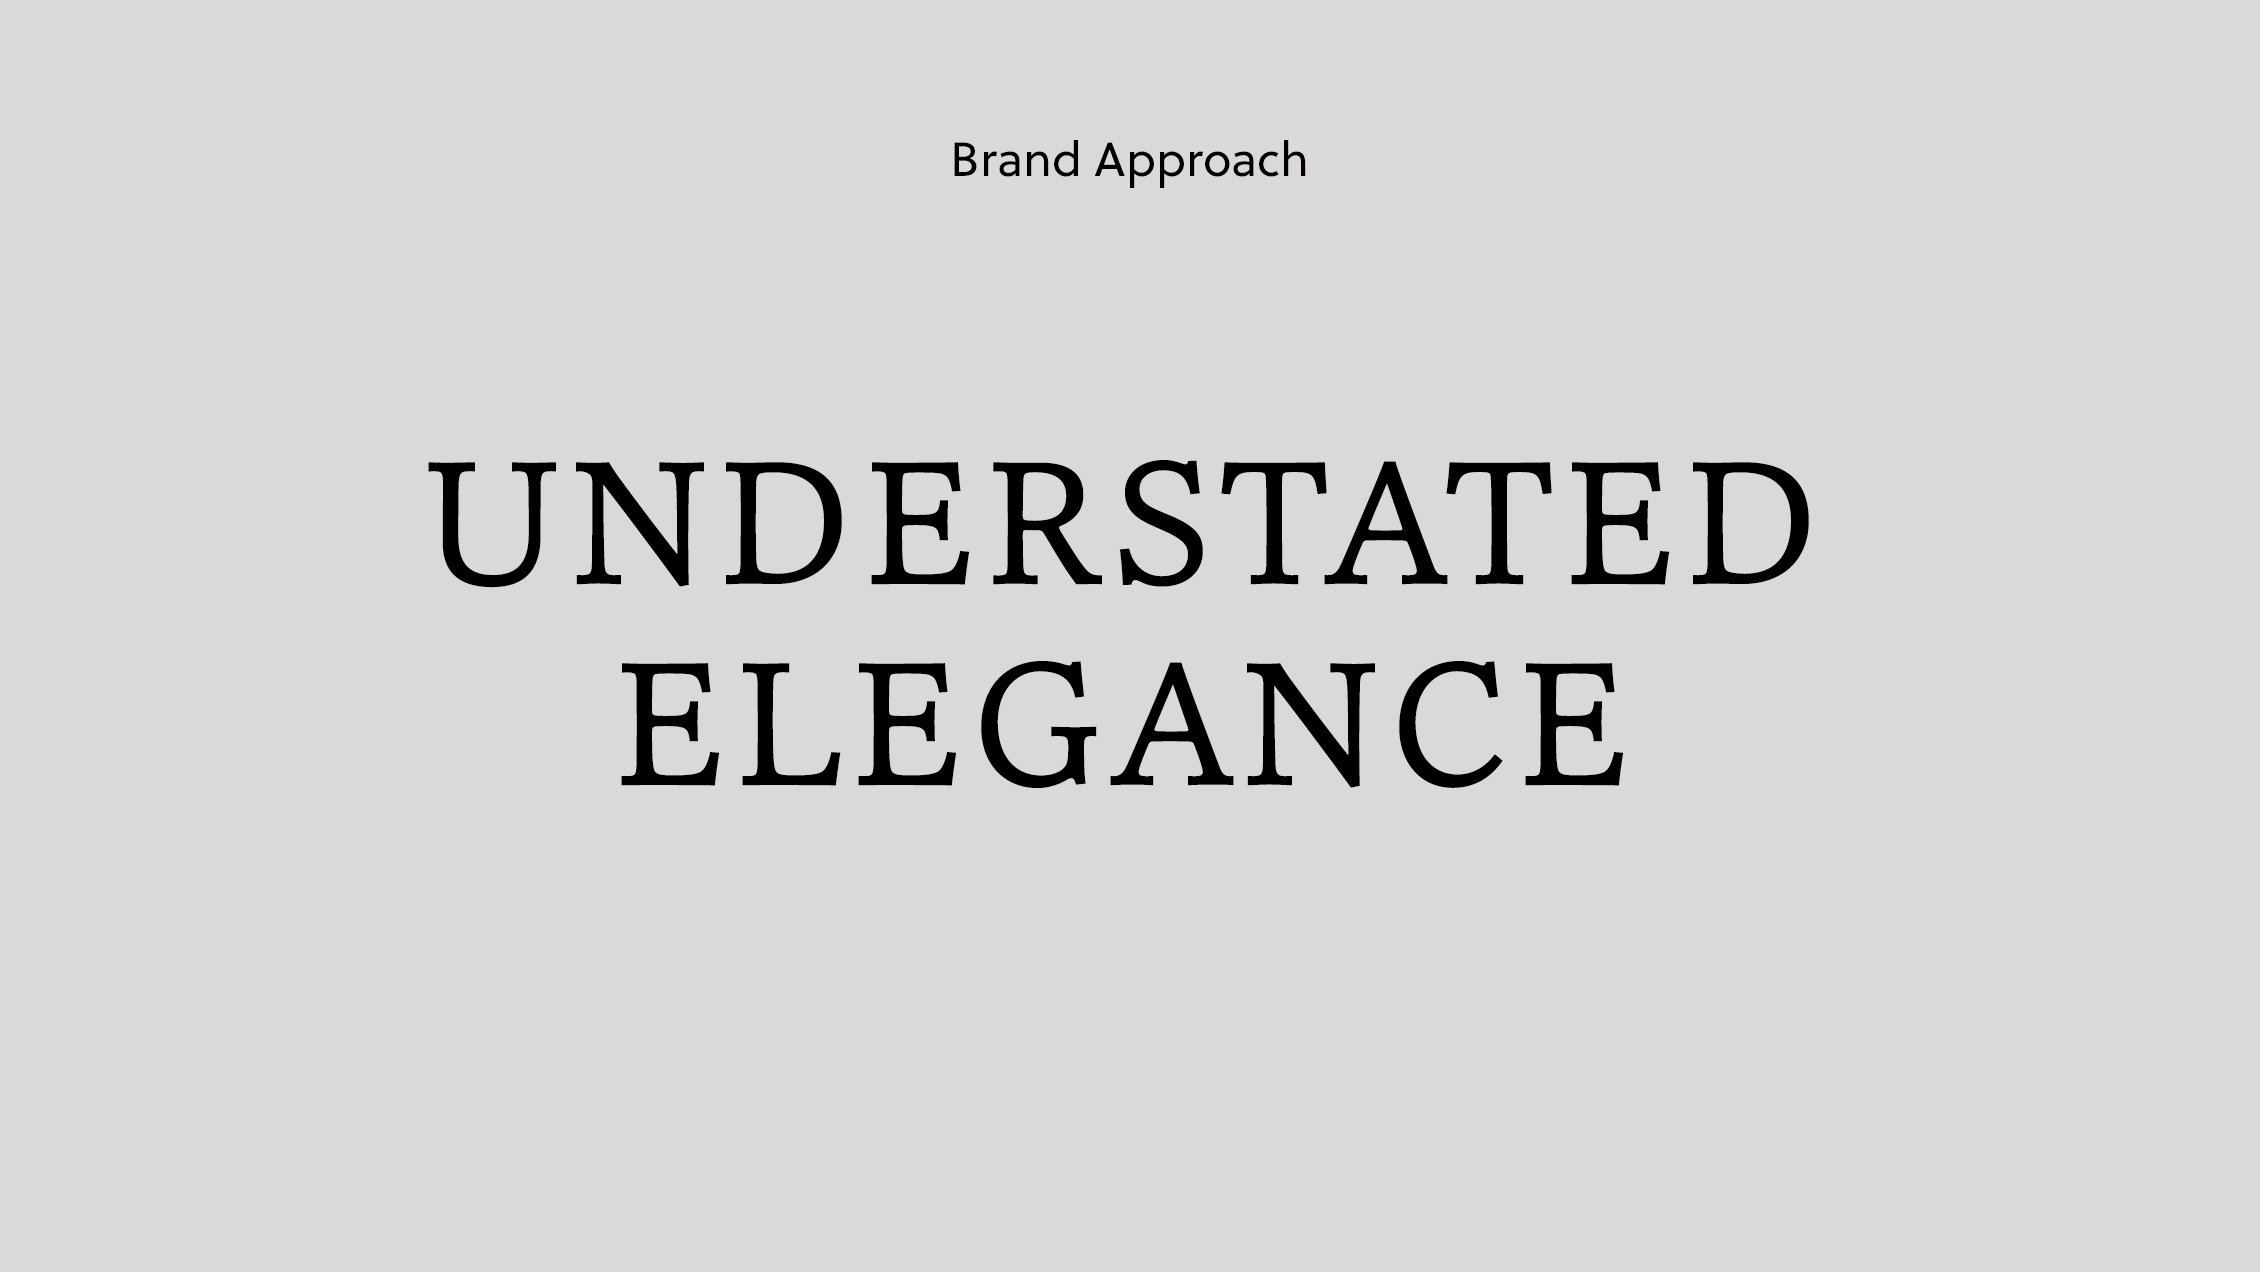 Alex Telfer Brand Approach